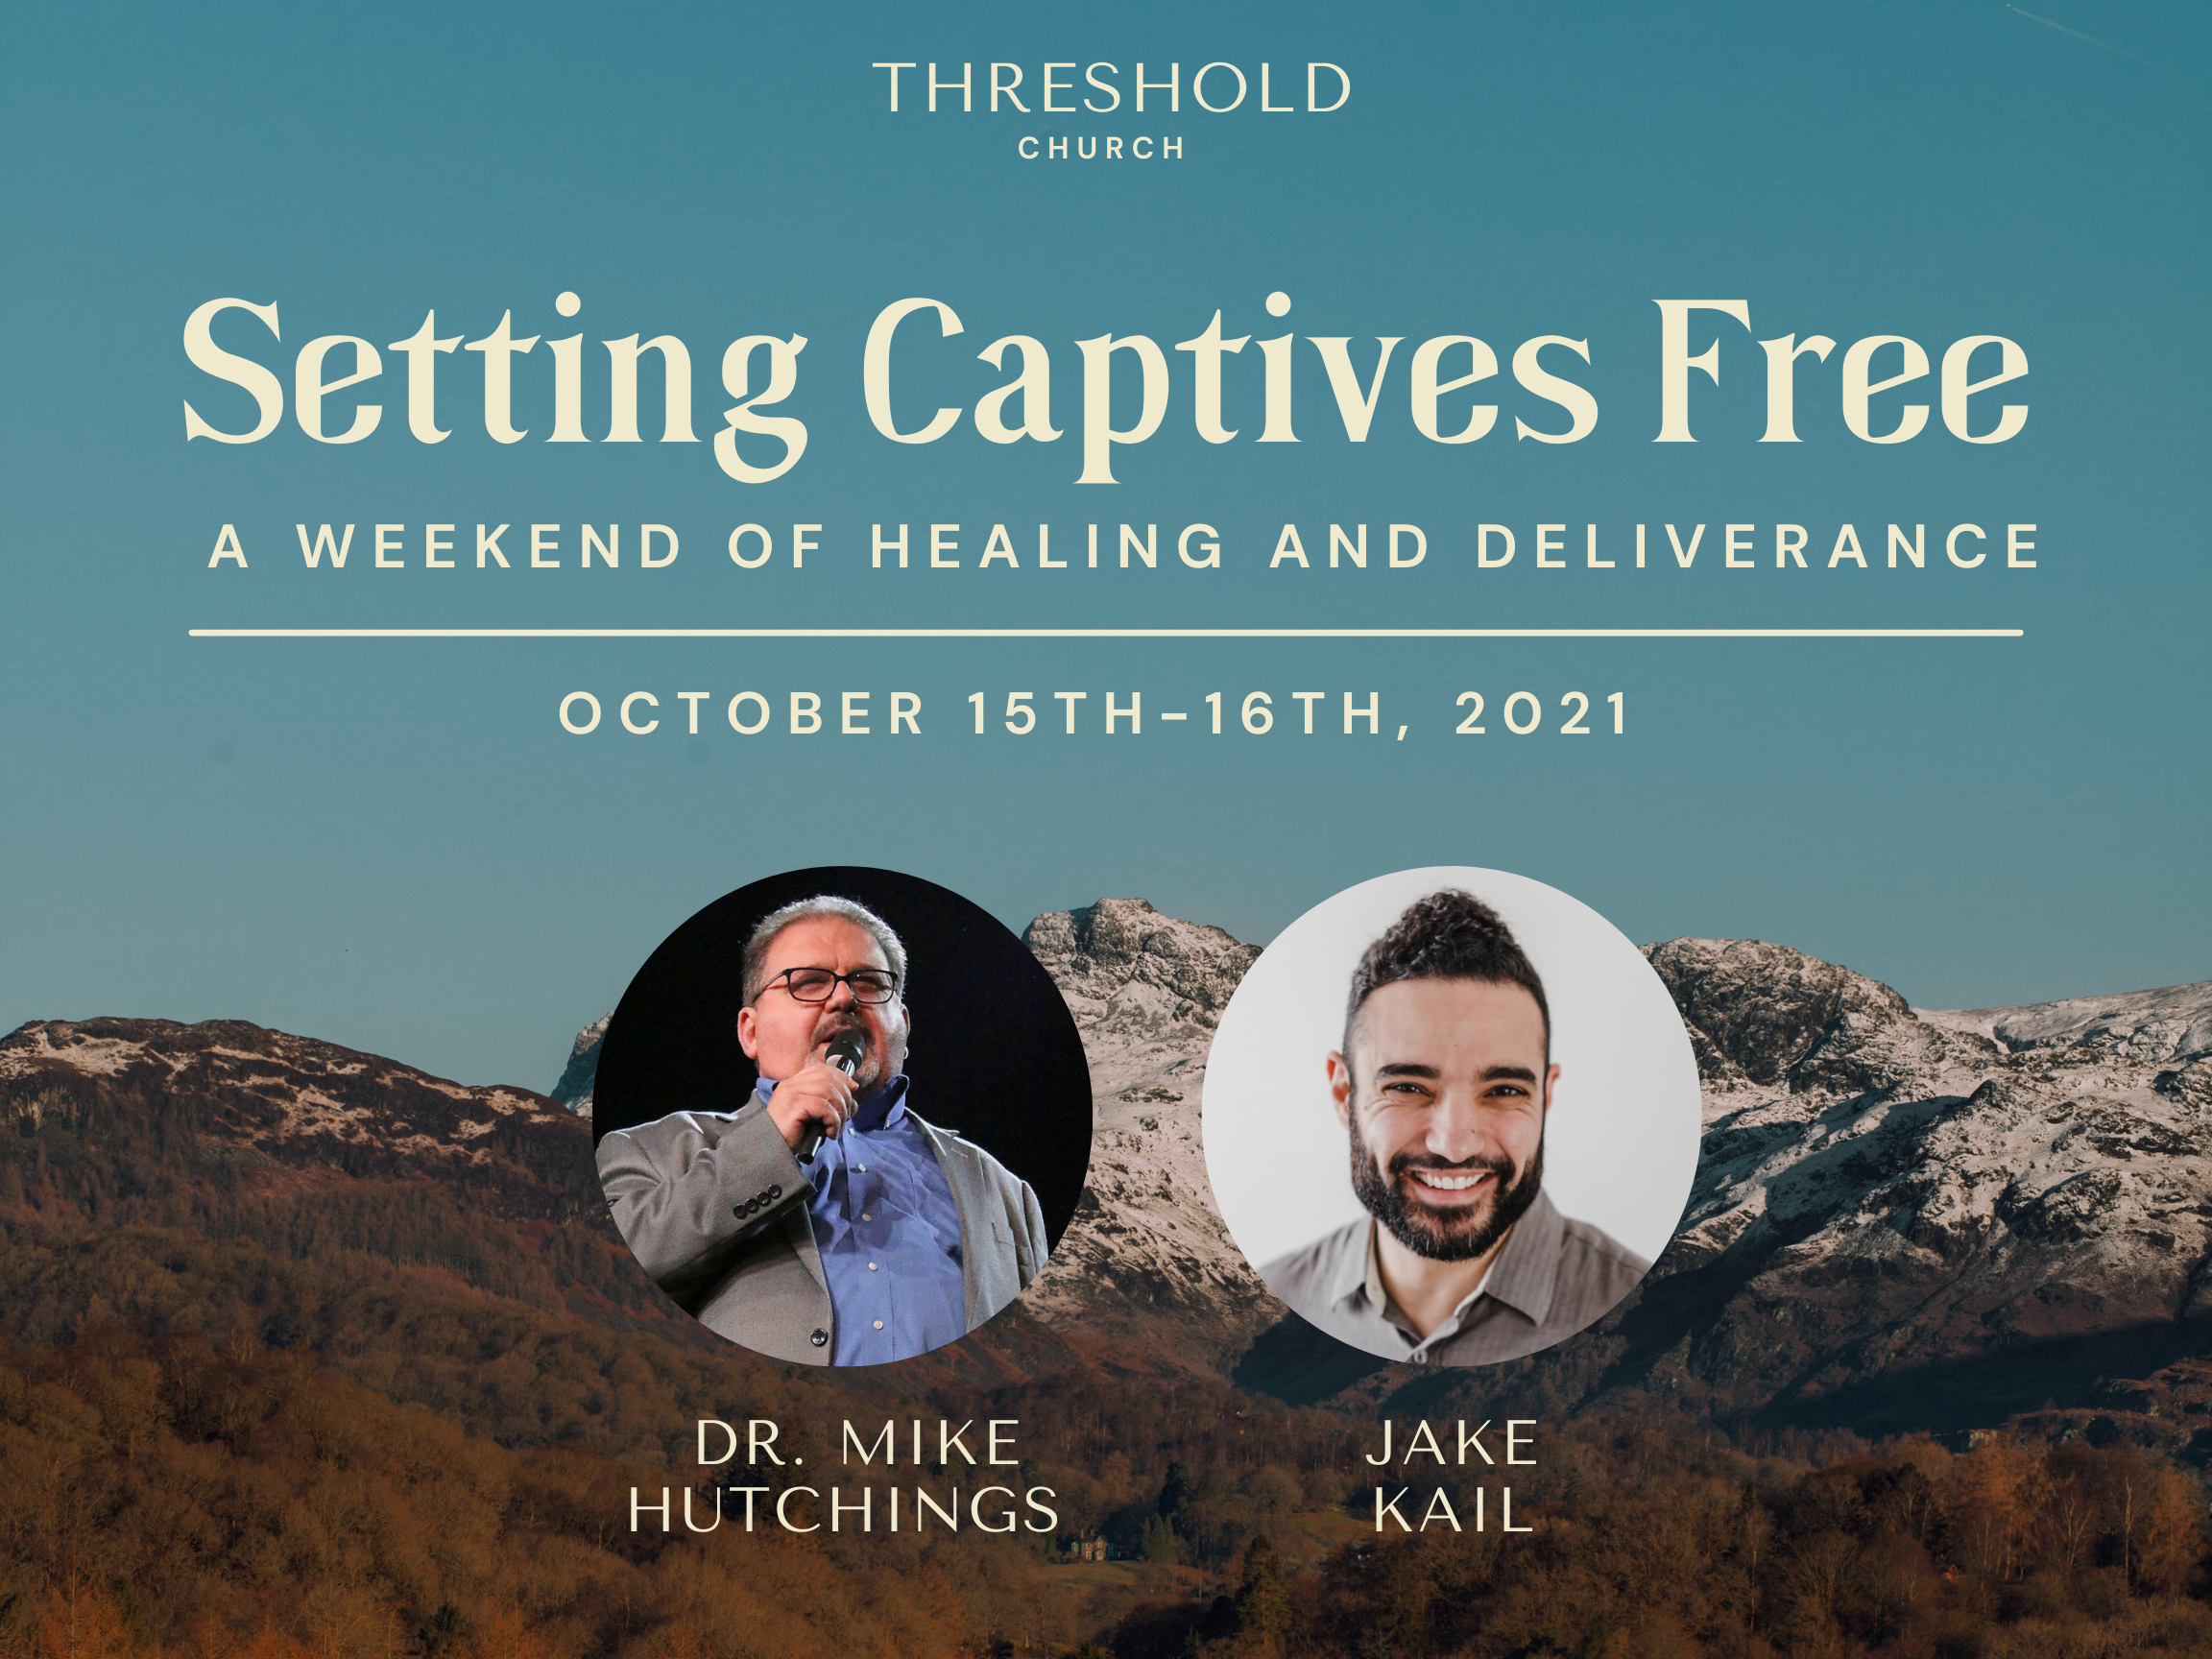 Setting Captives Free – A Weekend of Healing and Deliverance, Oct. 15-16